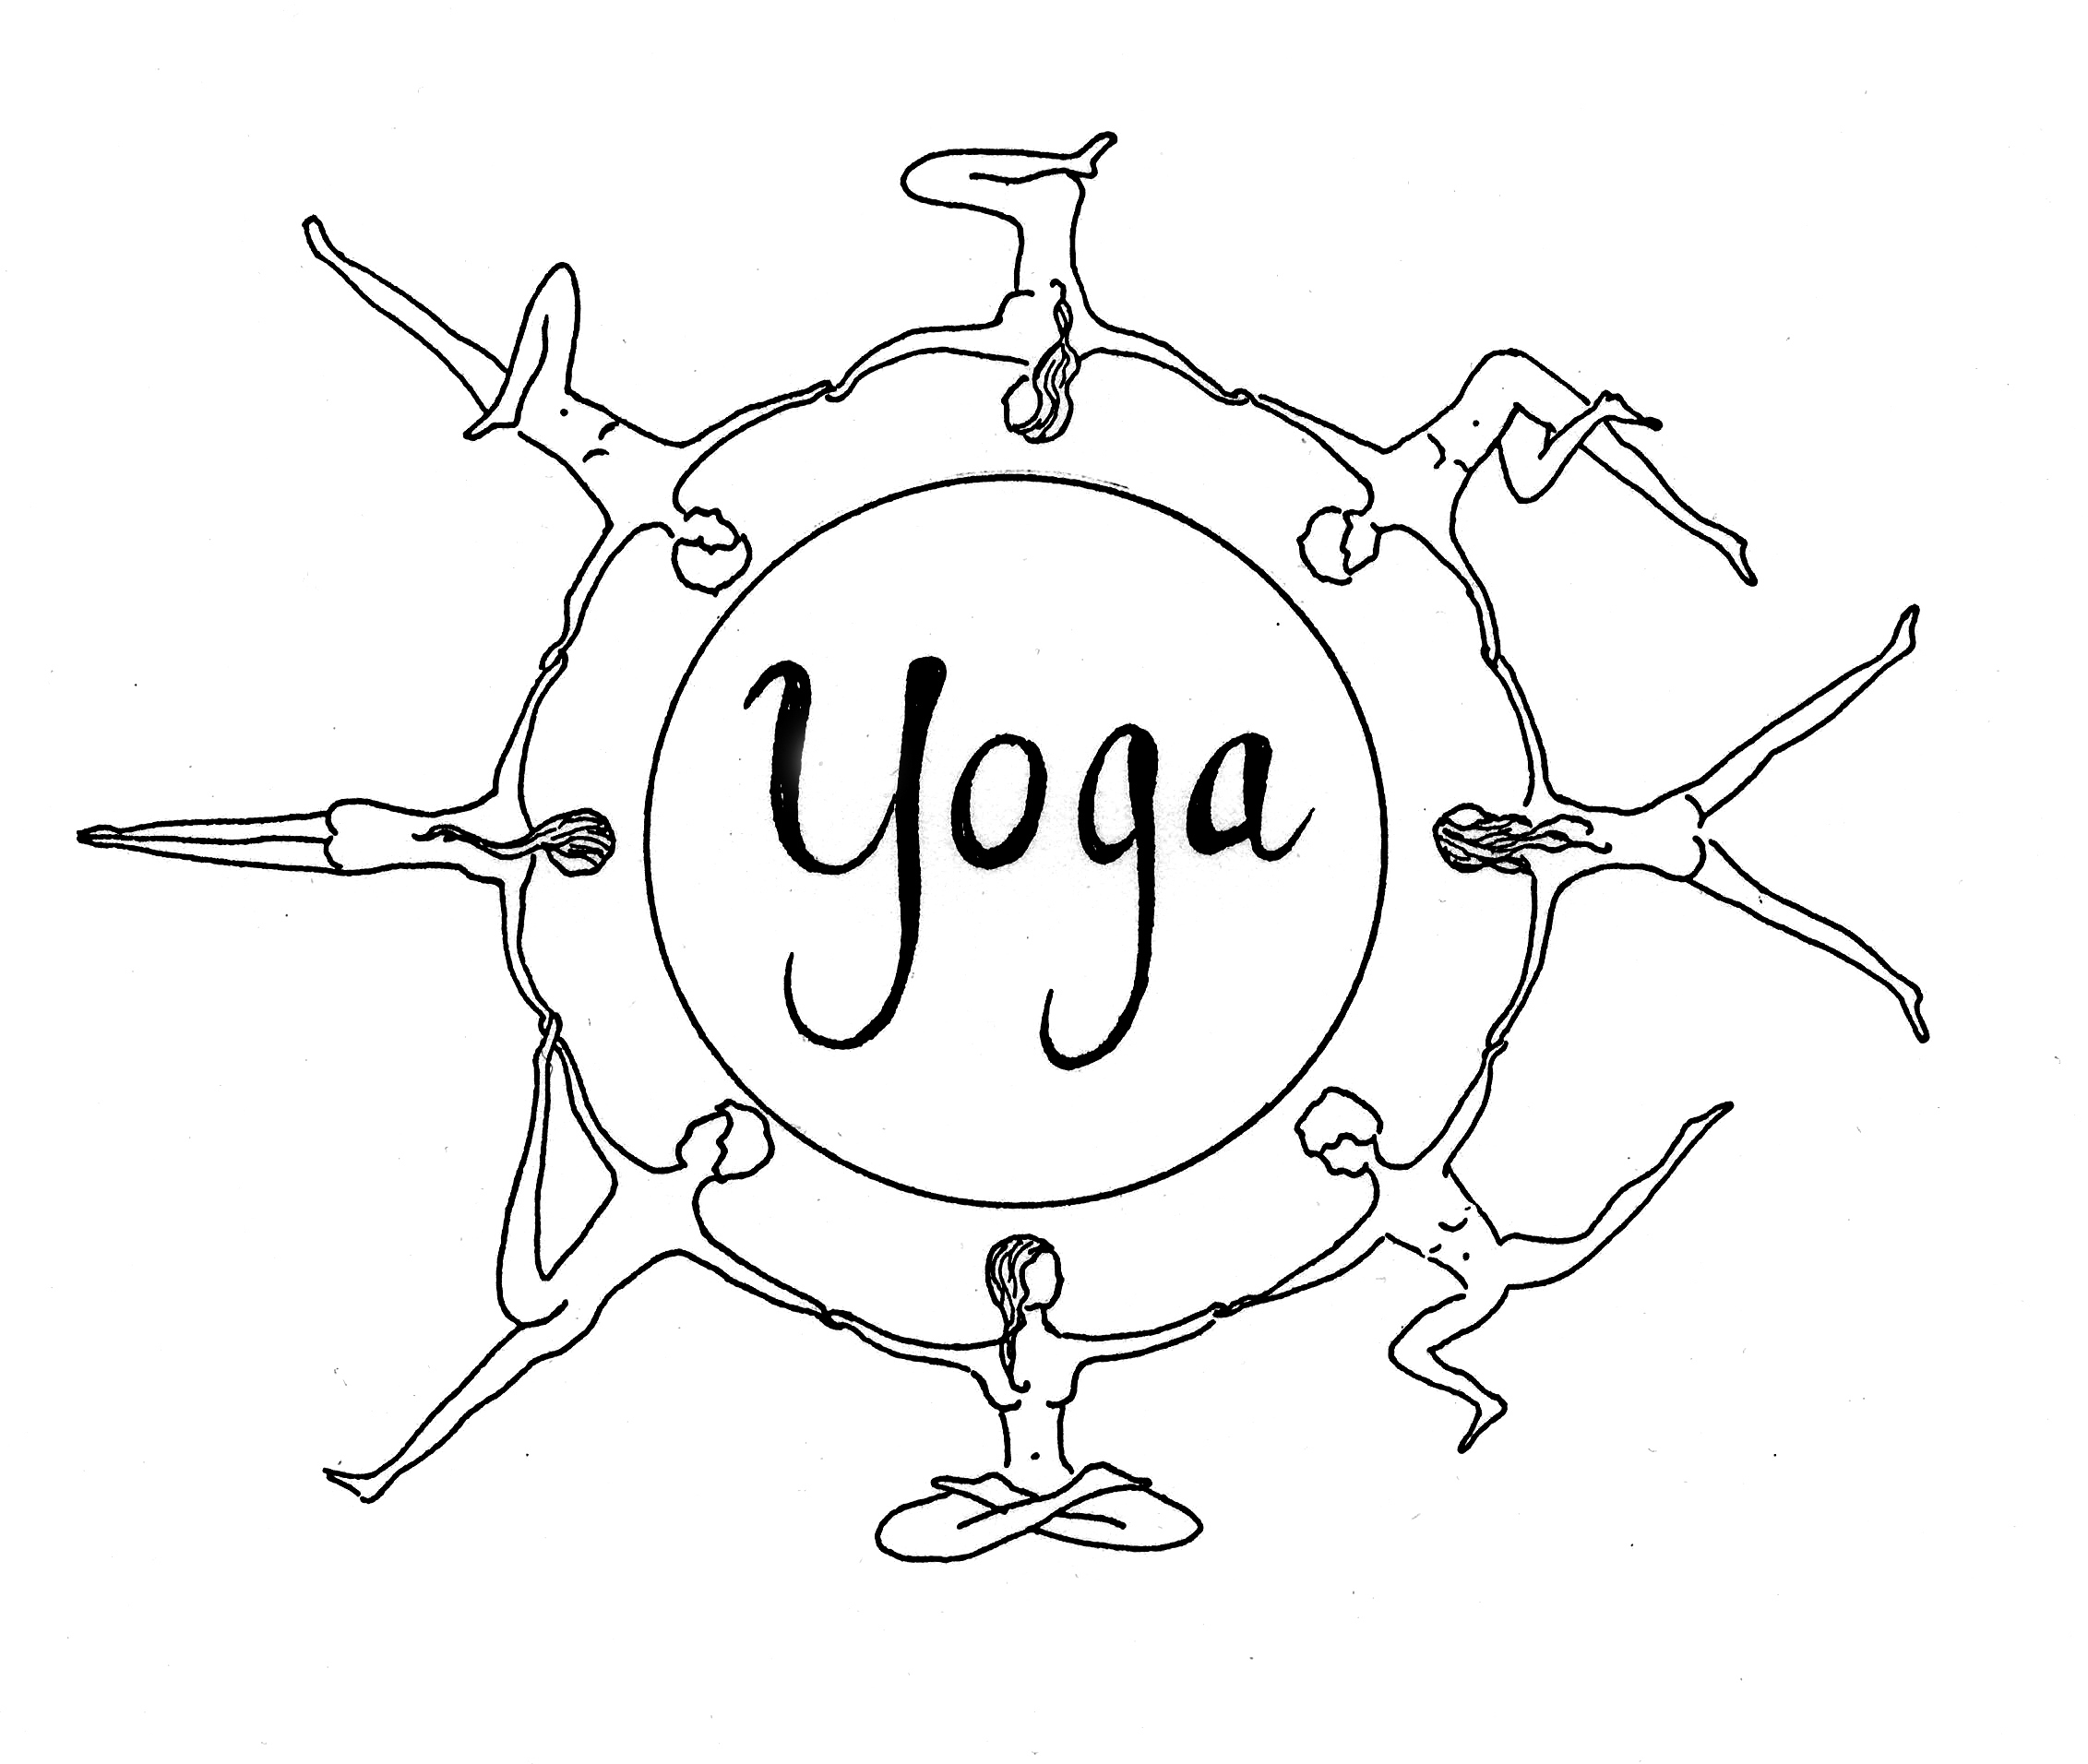 Yoga definition for me